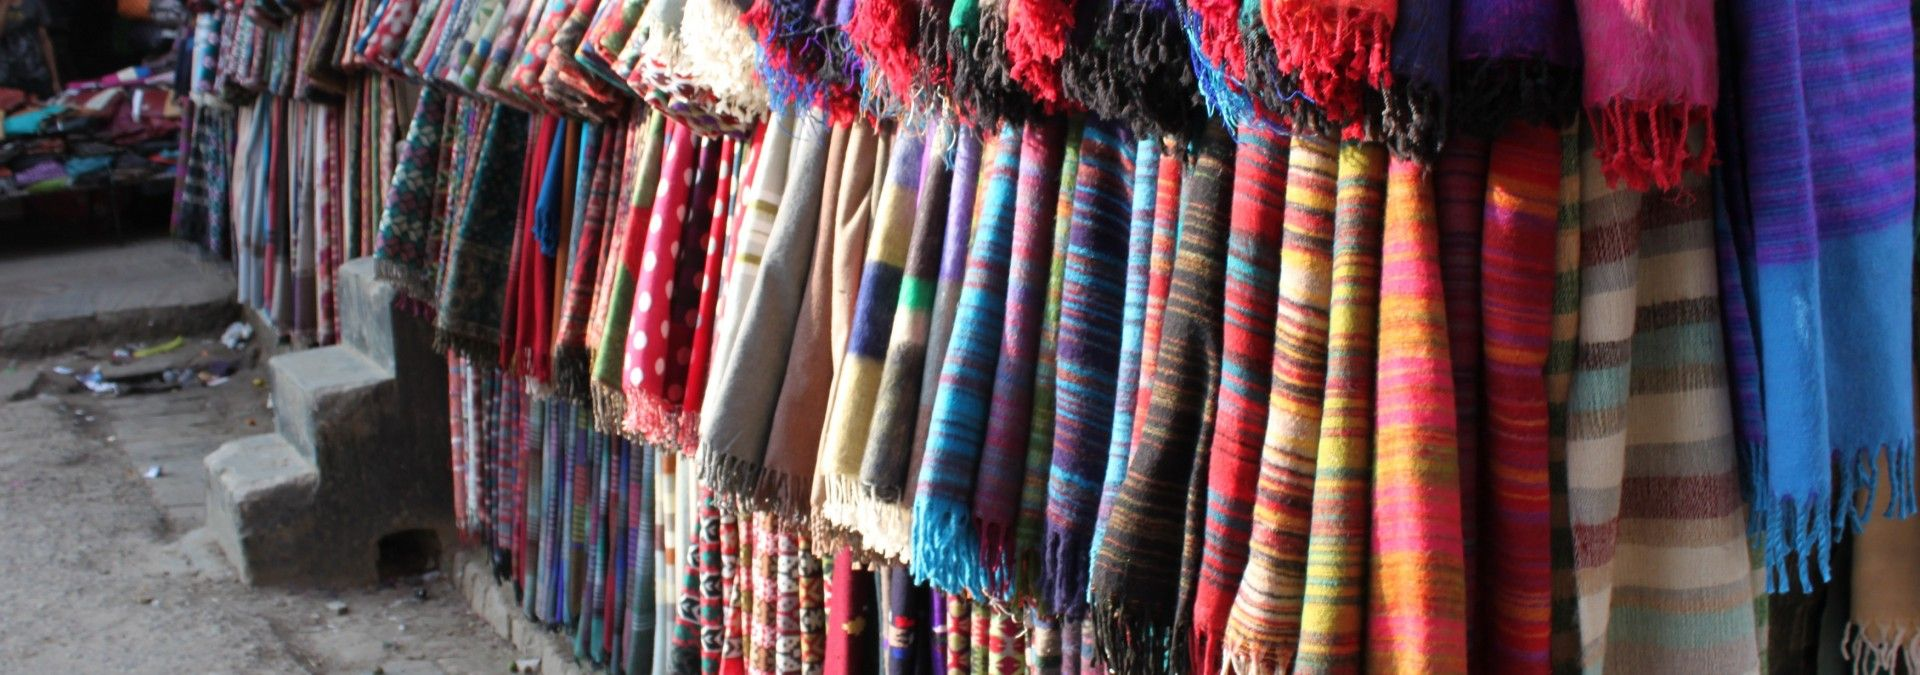 Textiles in the markets